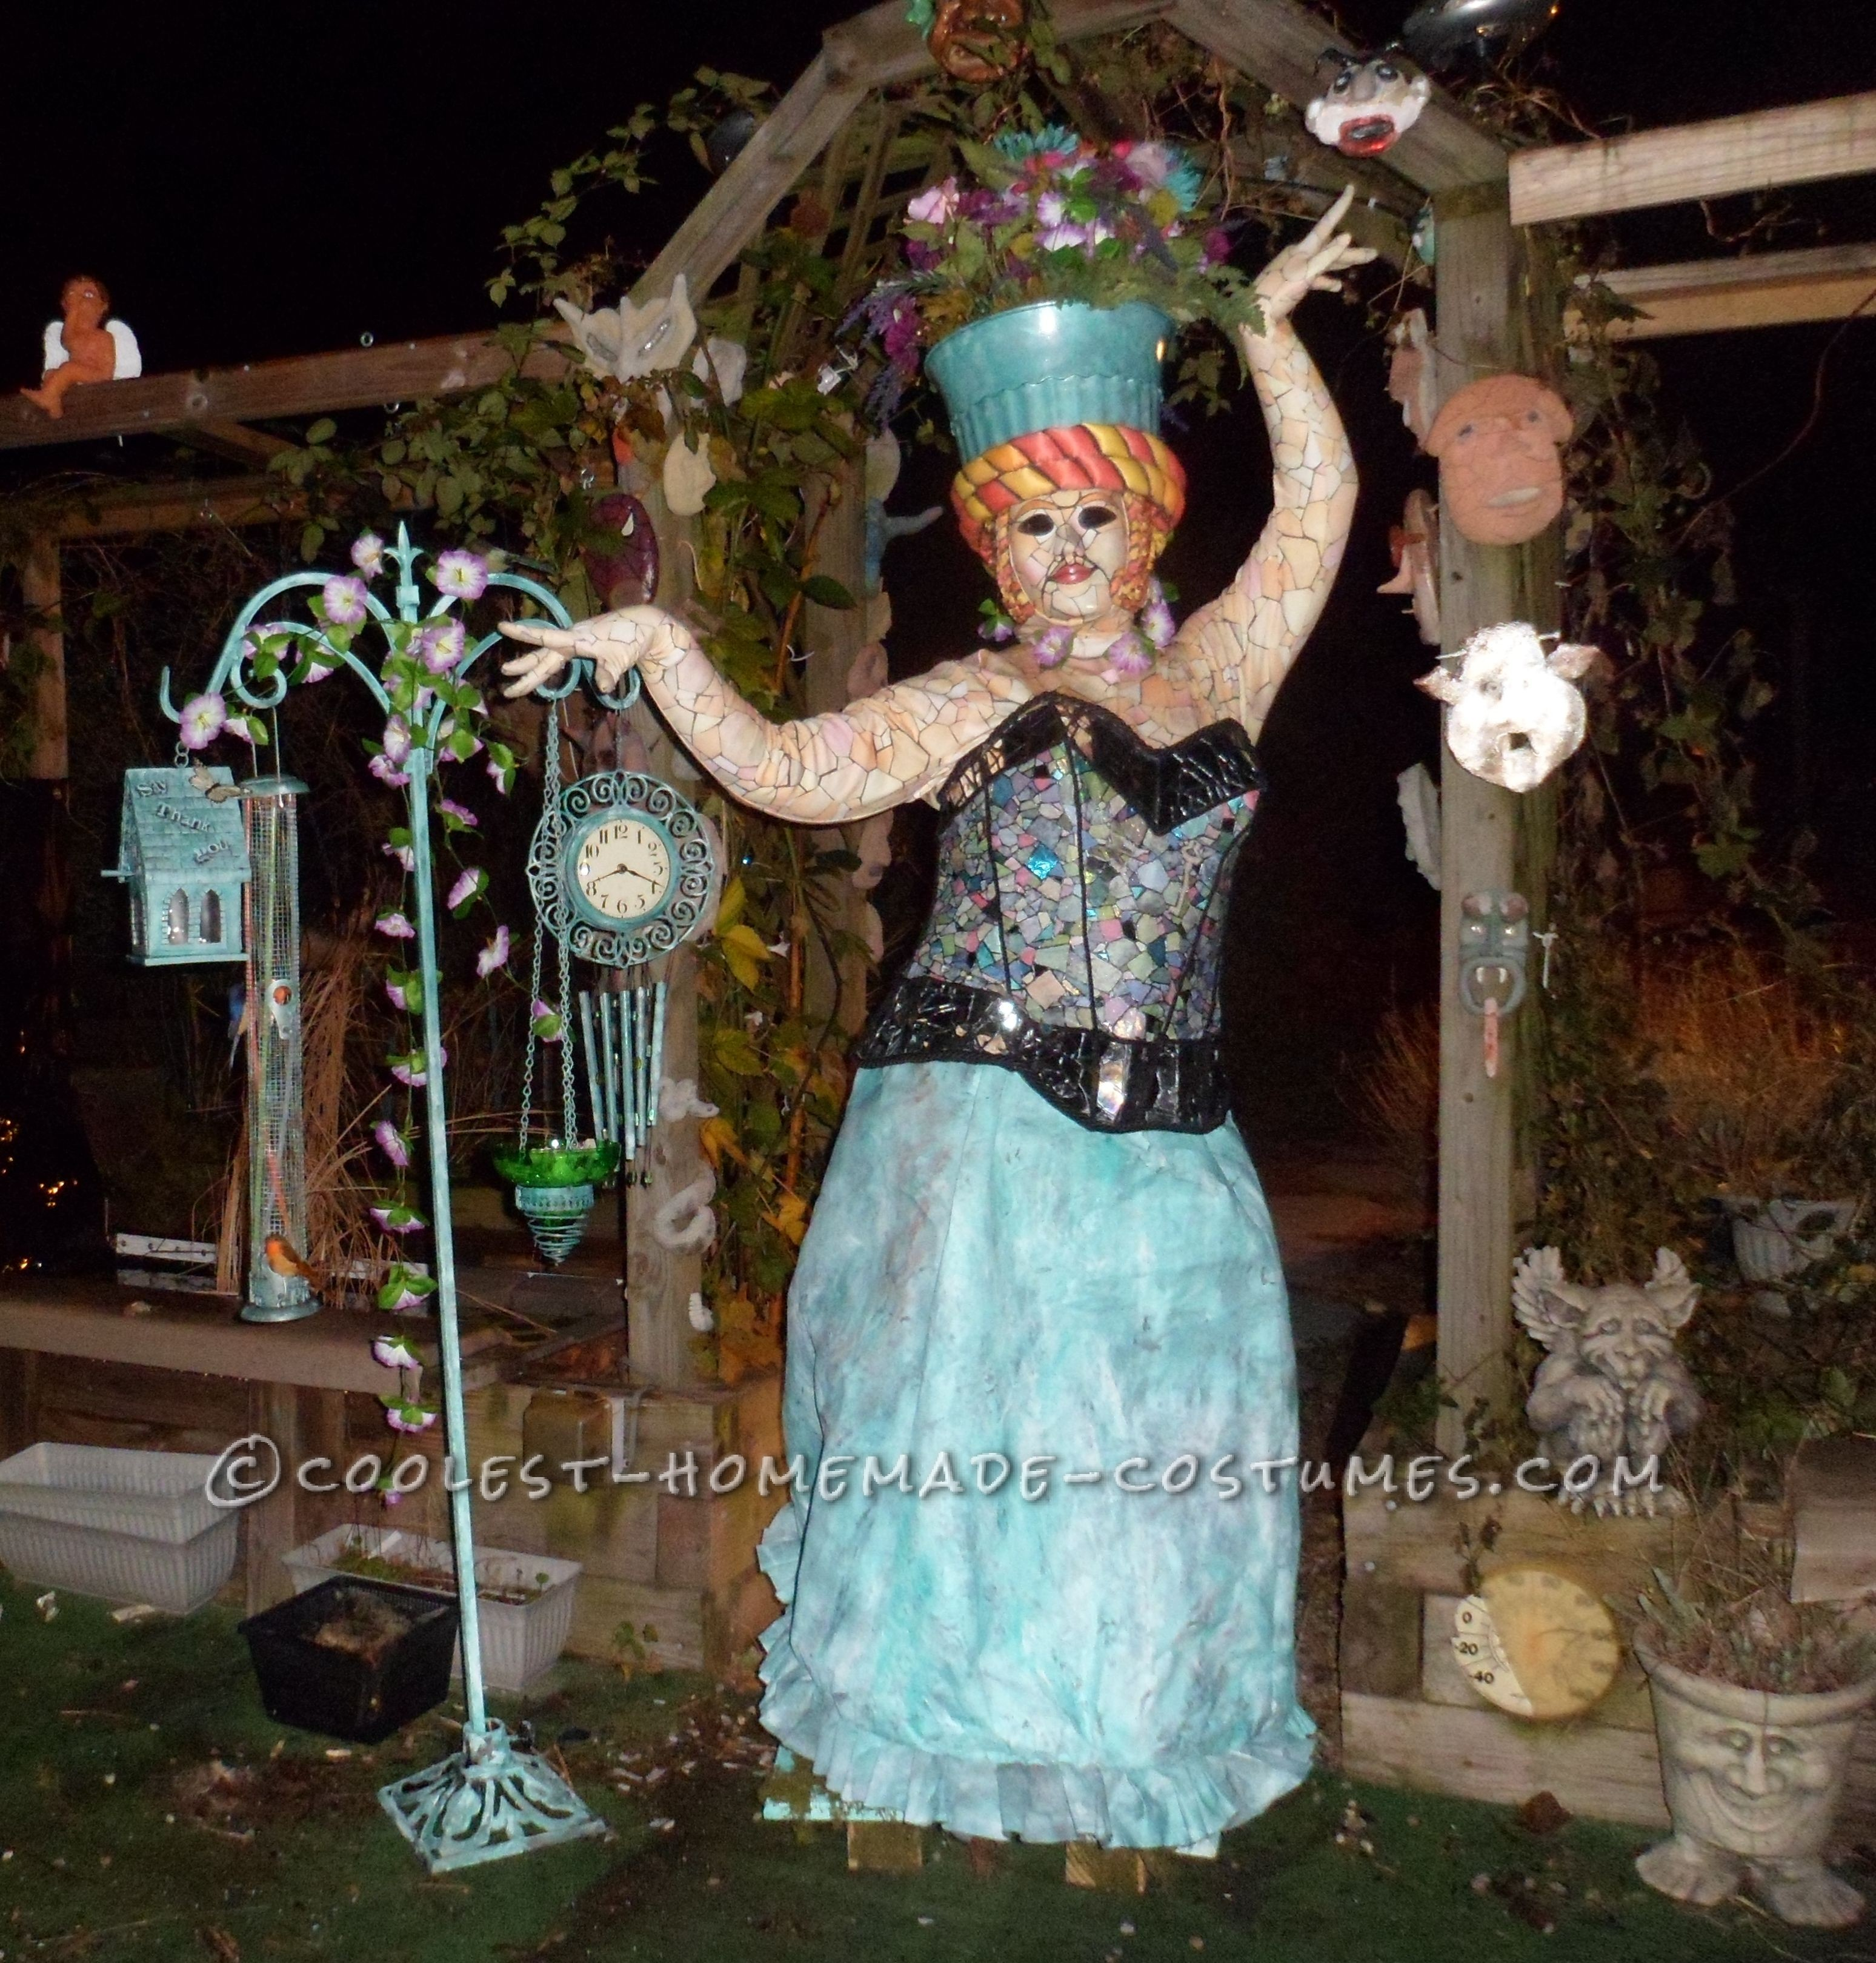 Creative Home Made Garden Mosaic Statue Costume